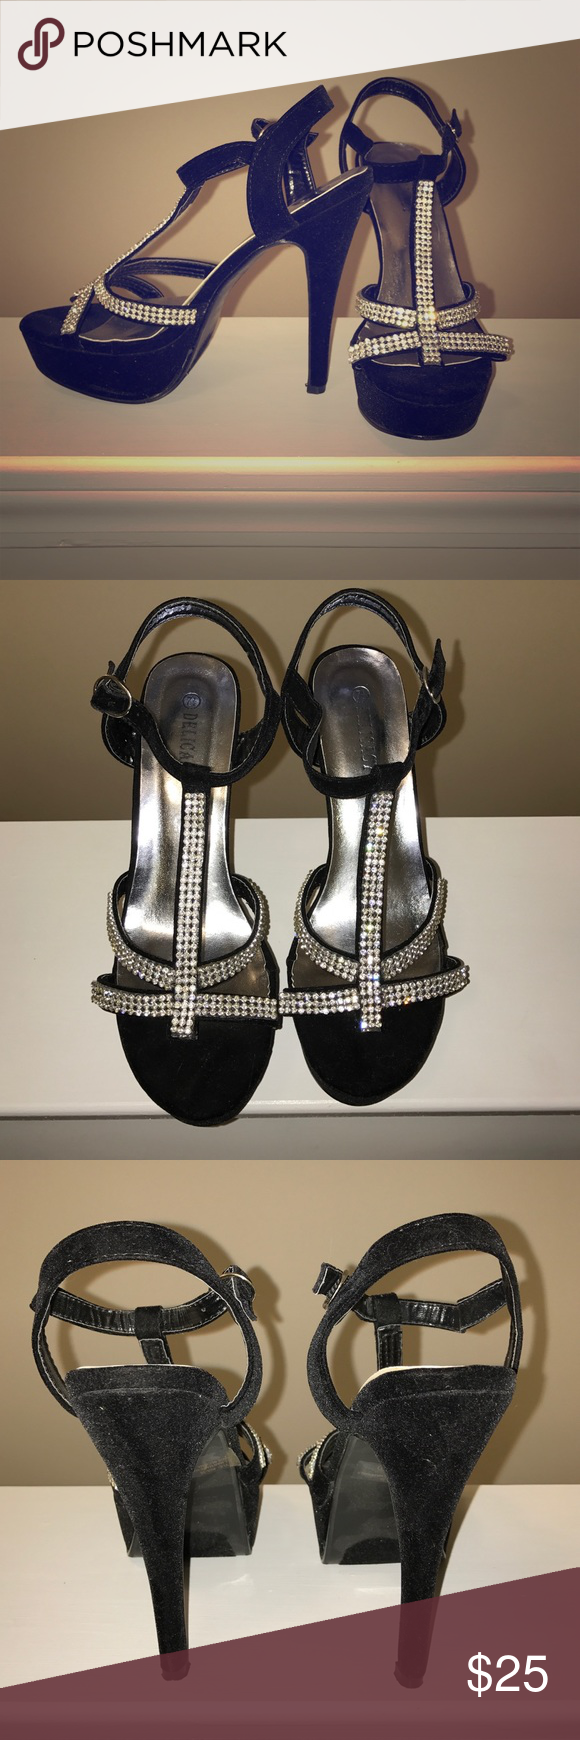 "Classy Rhinestone & Black ""Suede"" Strappy Heels Super sexy and versatile black ""suede"" and rhinestone stewpot platform heels that can be worn with just about any dressy outfit. Gently used but in near perfect condition. Shoes Heels"